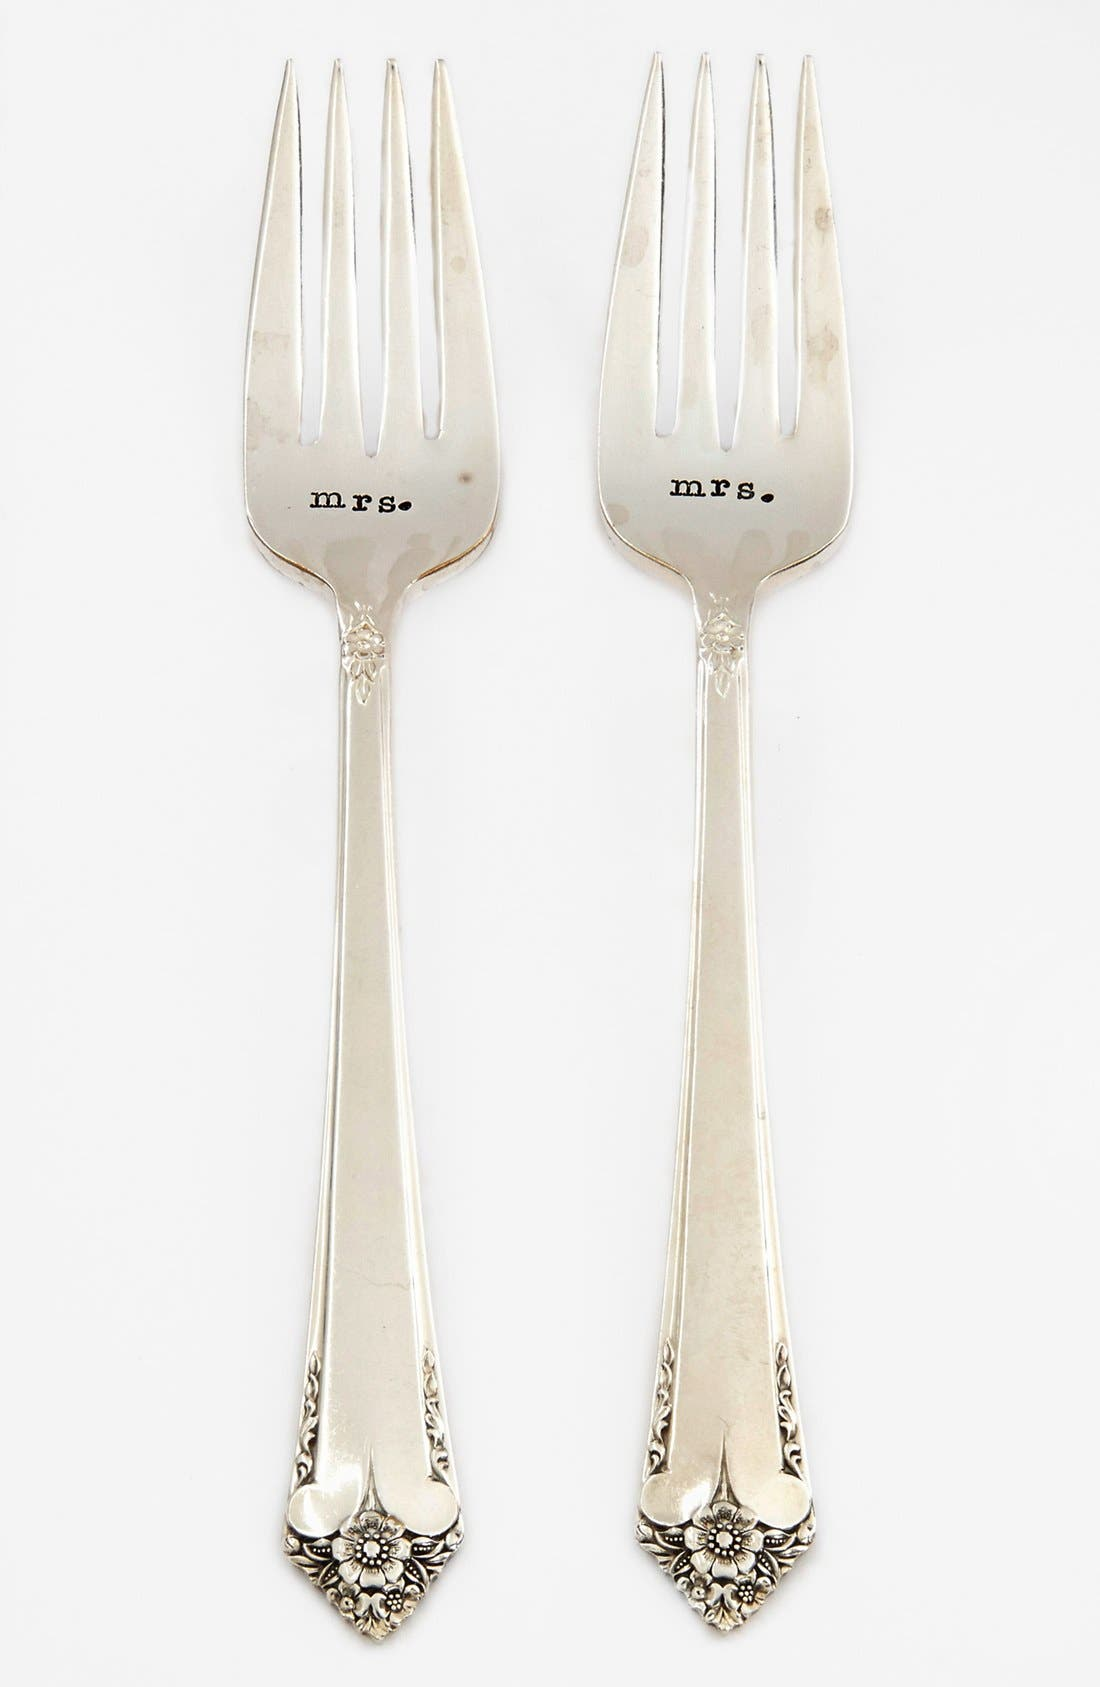 Main Image - Milk and Honey Luxuries 'Mrs. & Mrs.' Vintage Wedding Forks (Set of 2)